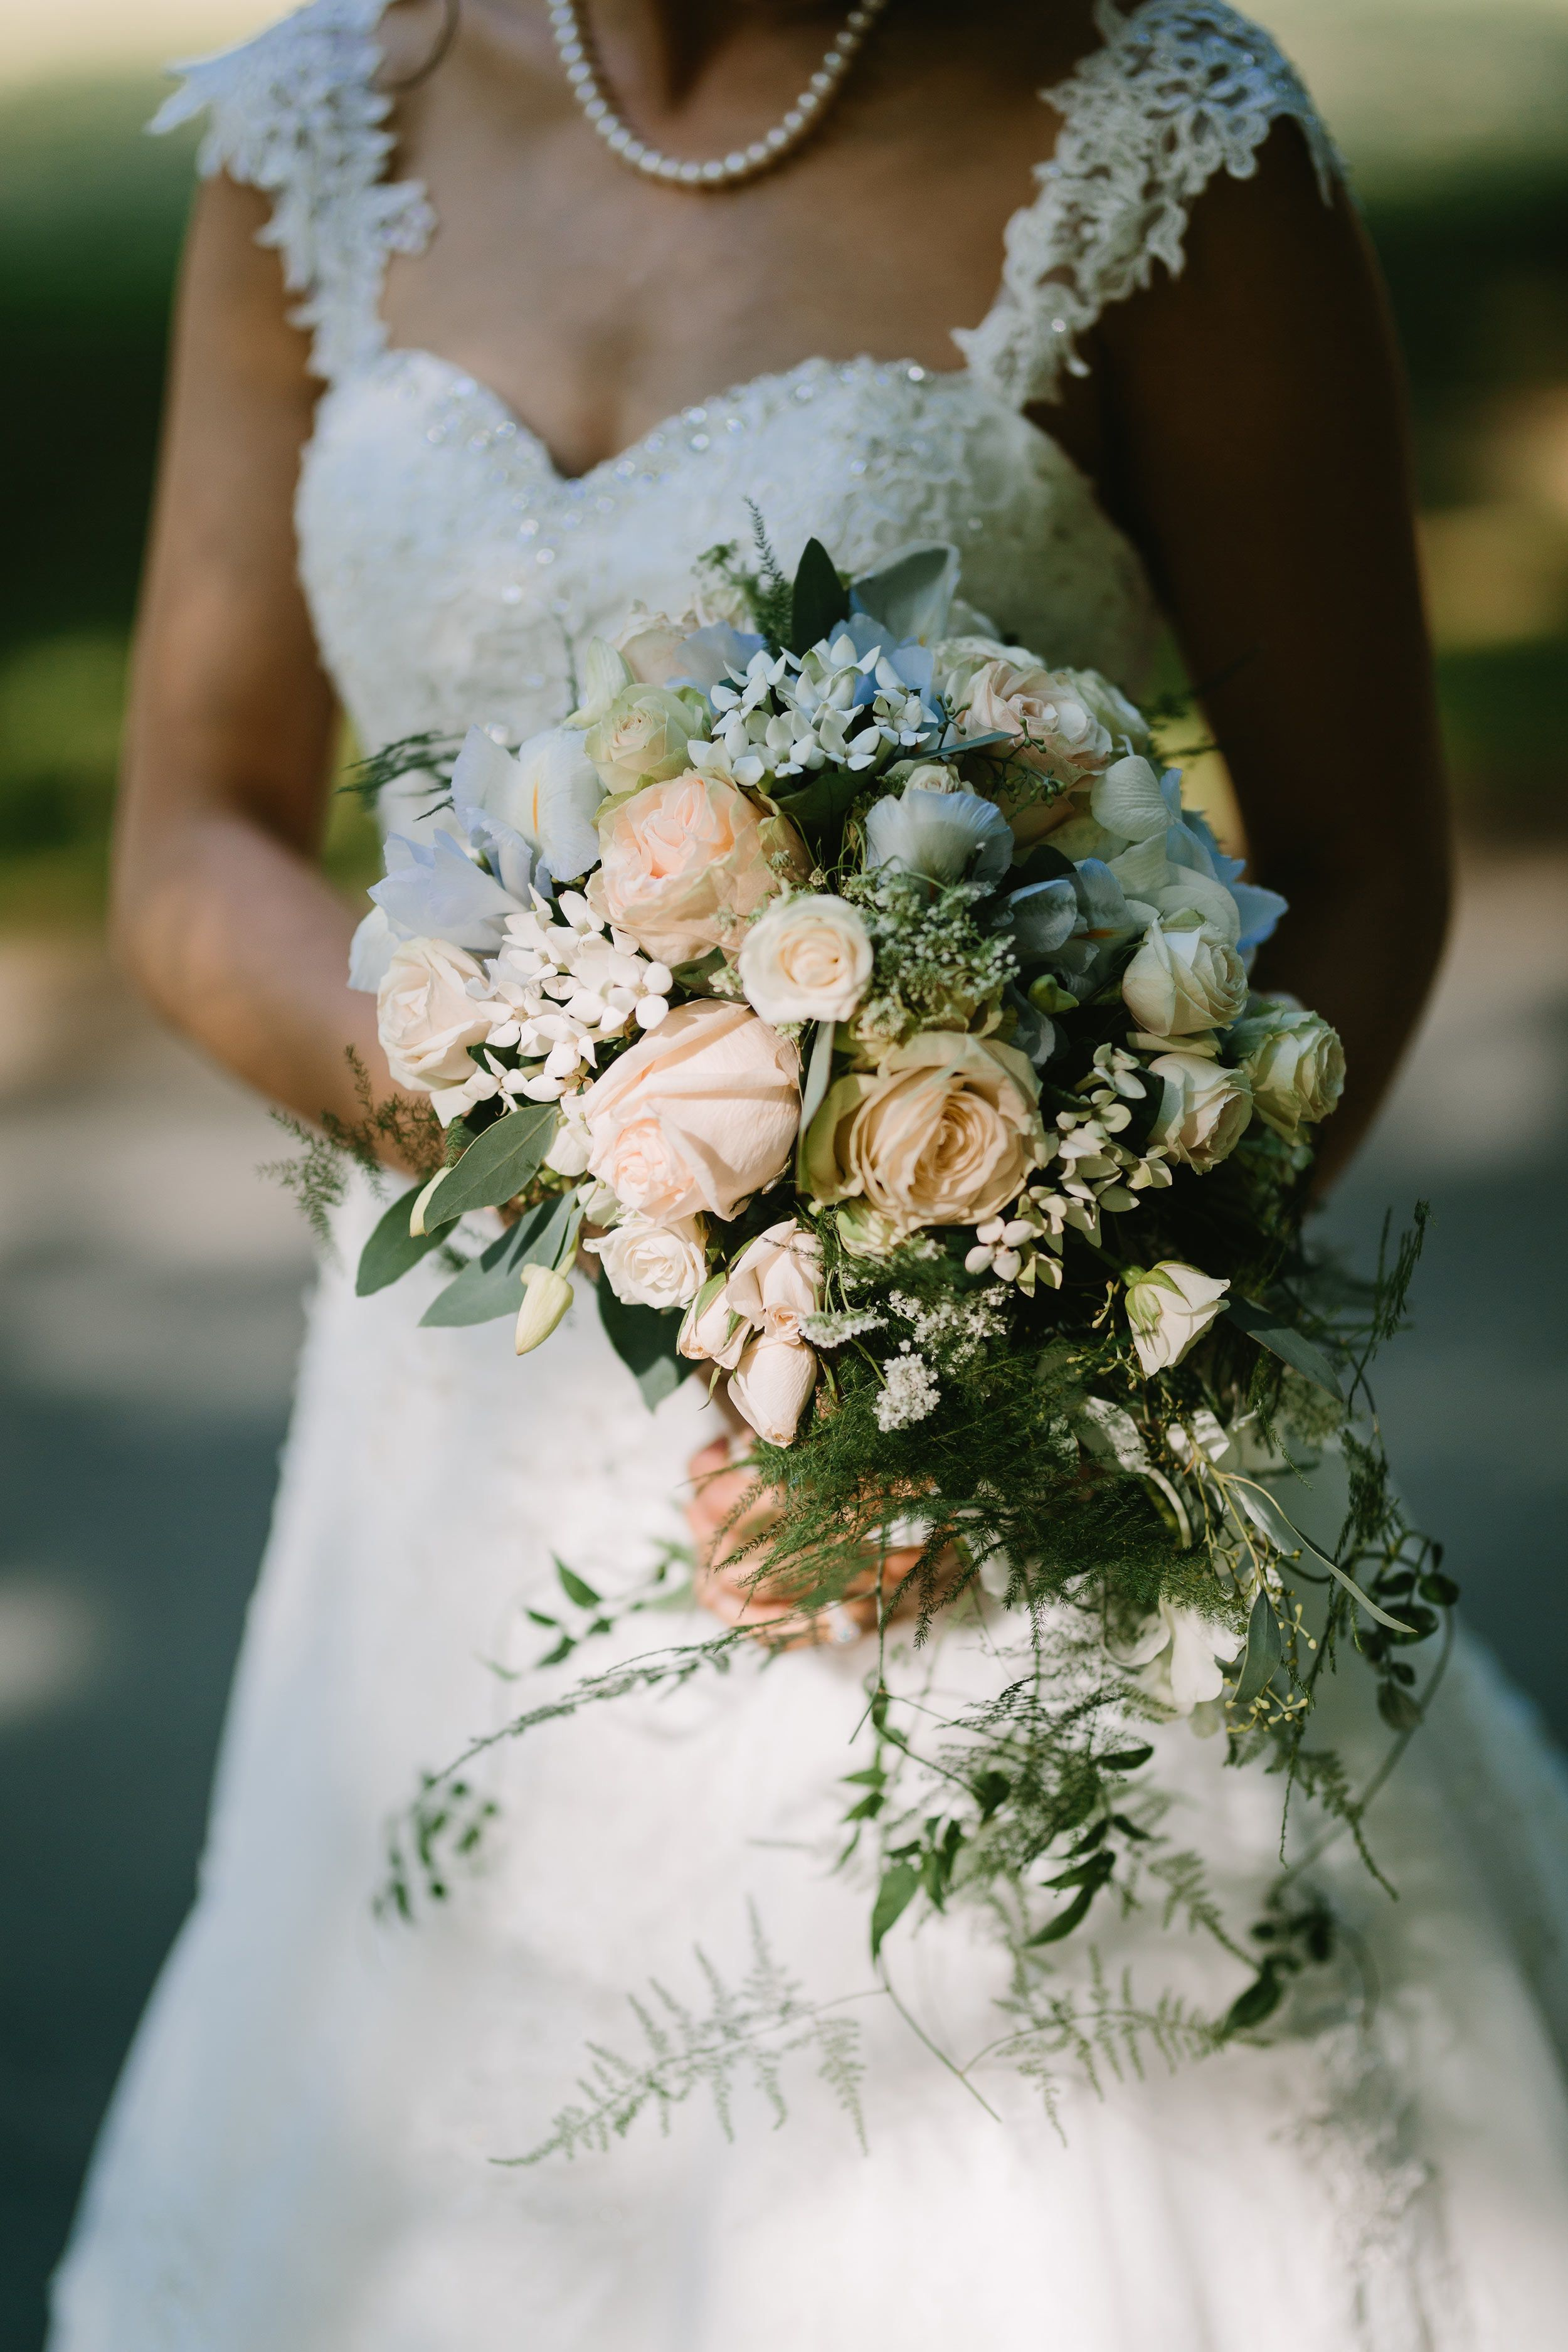 wedding photography Victoria BC Canada bride with flowers